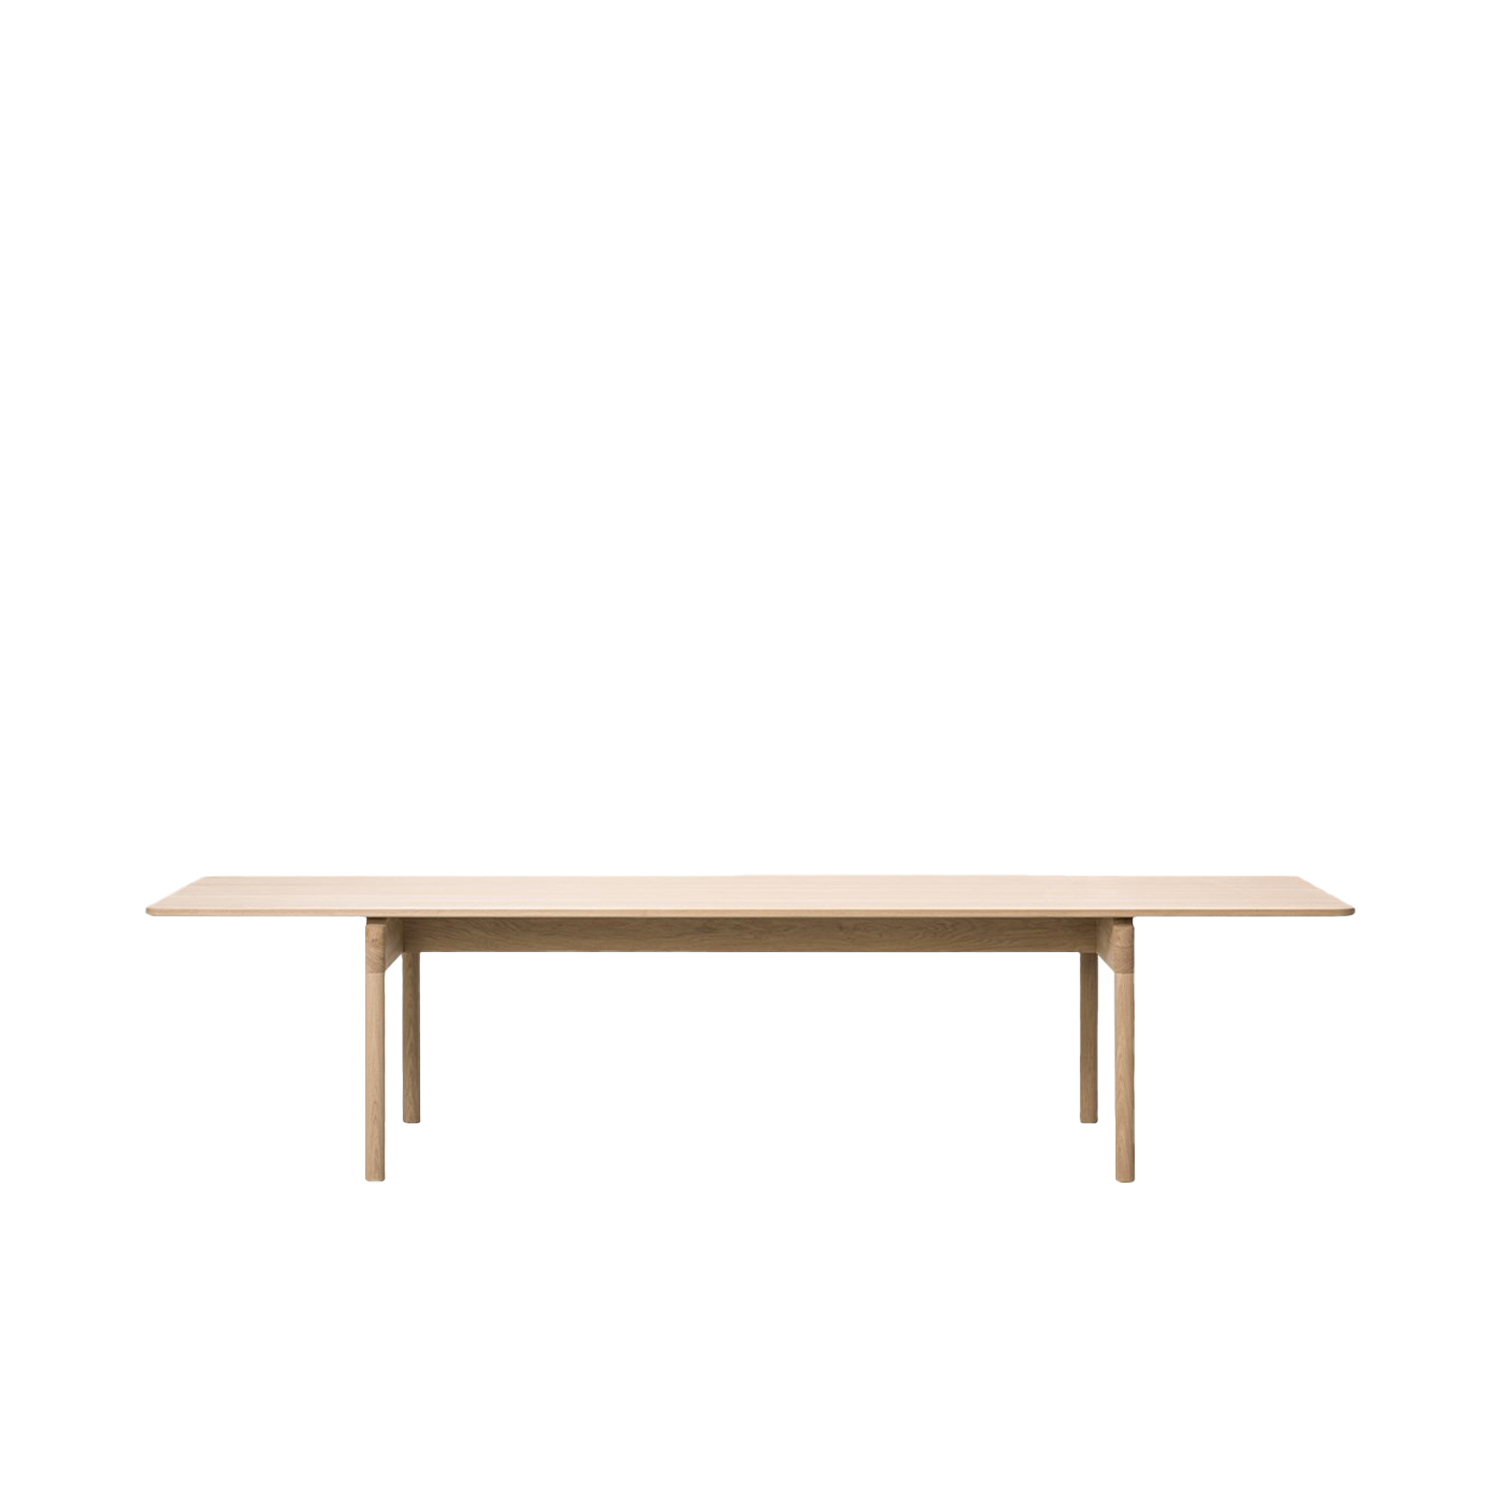 Post 6442 Dining Table - With its long rectangular table top and sturdy cylindrical legs, the Post Table is the perfect merging of functionality, simplicity and serenity in a classic design expressed with modern minimalism. The structural frame is exceptionally crafted in solid wood, teamed with a table top in solid oak. Enjoy loads of leg room in the wide space between the legs on either end, adding to the appeal of this practical, tactile table for dining or meeting in a residential, corporate or hospitality setting.